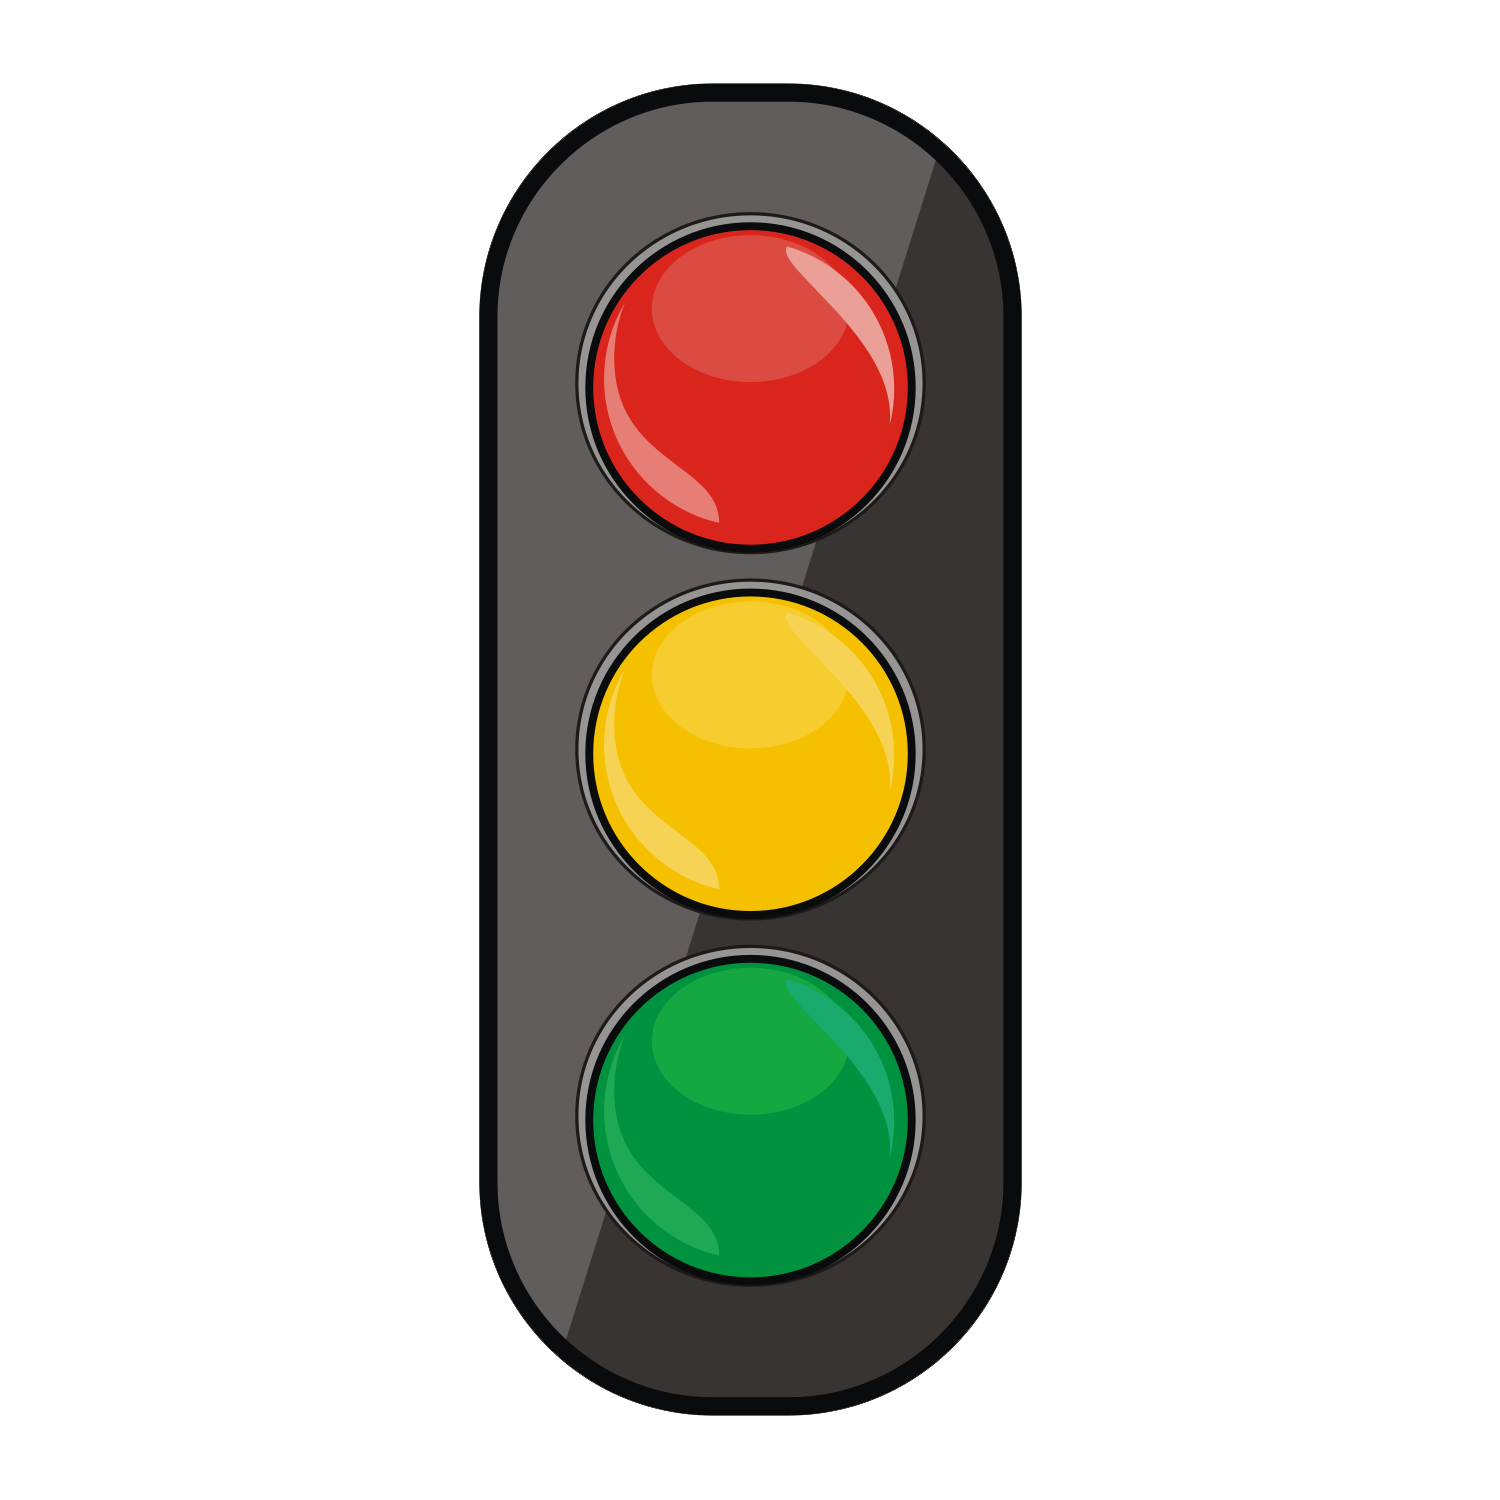 traffic light png transparent traffic light png images pluspng rh pluspng com traffic light clipart png traffic light clipart free download